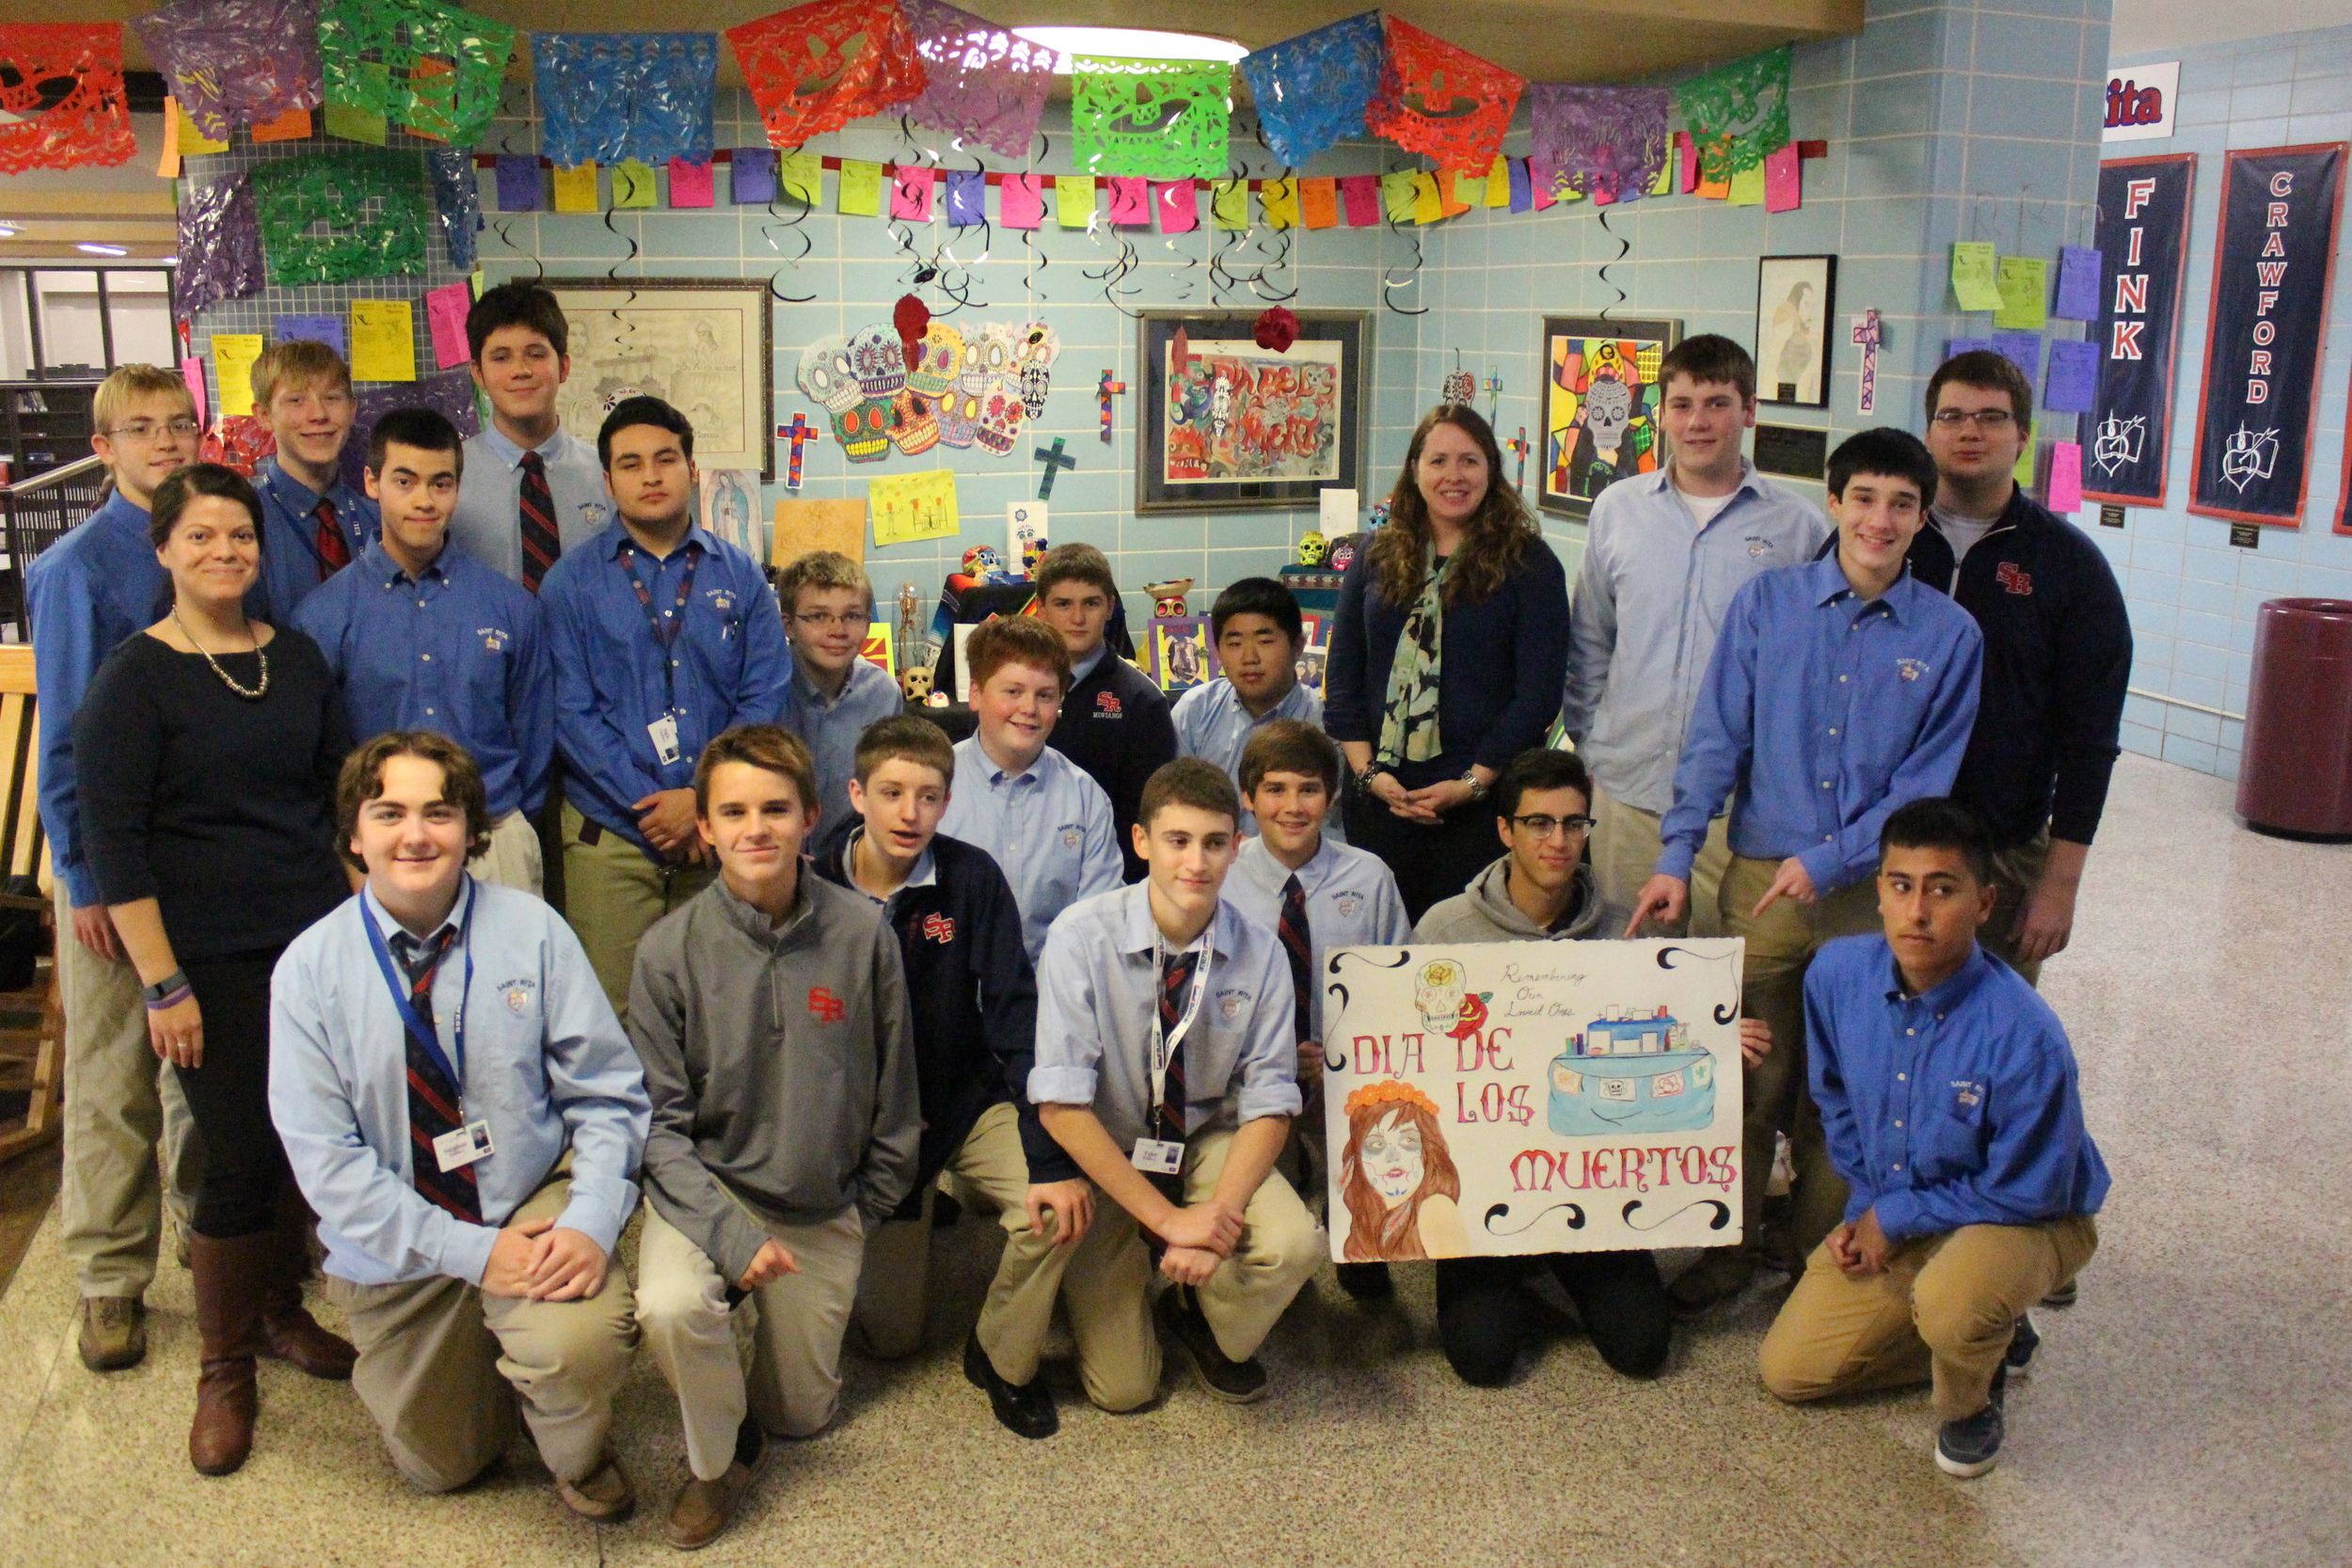 The St. Rita High School Spanish Club with Ms. Yanez and Mrs. Earley at the Day of the Dead altar